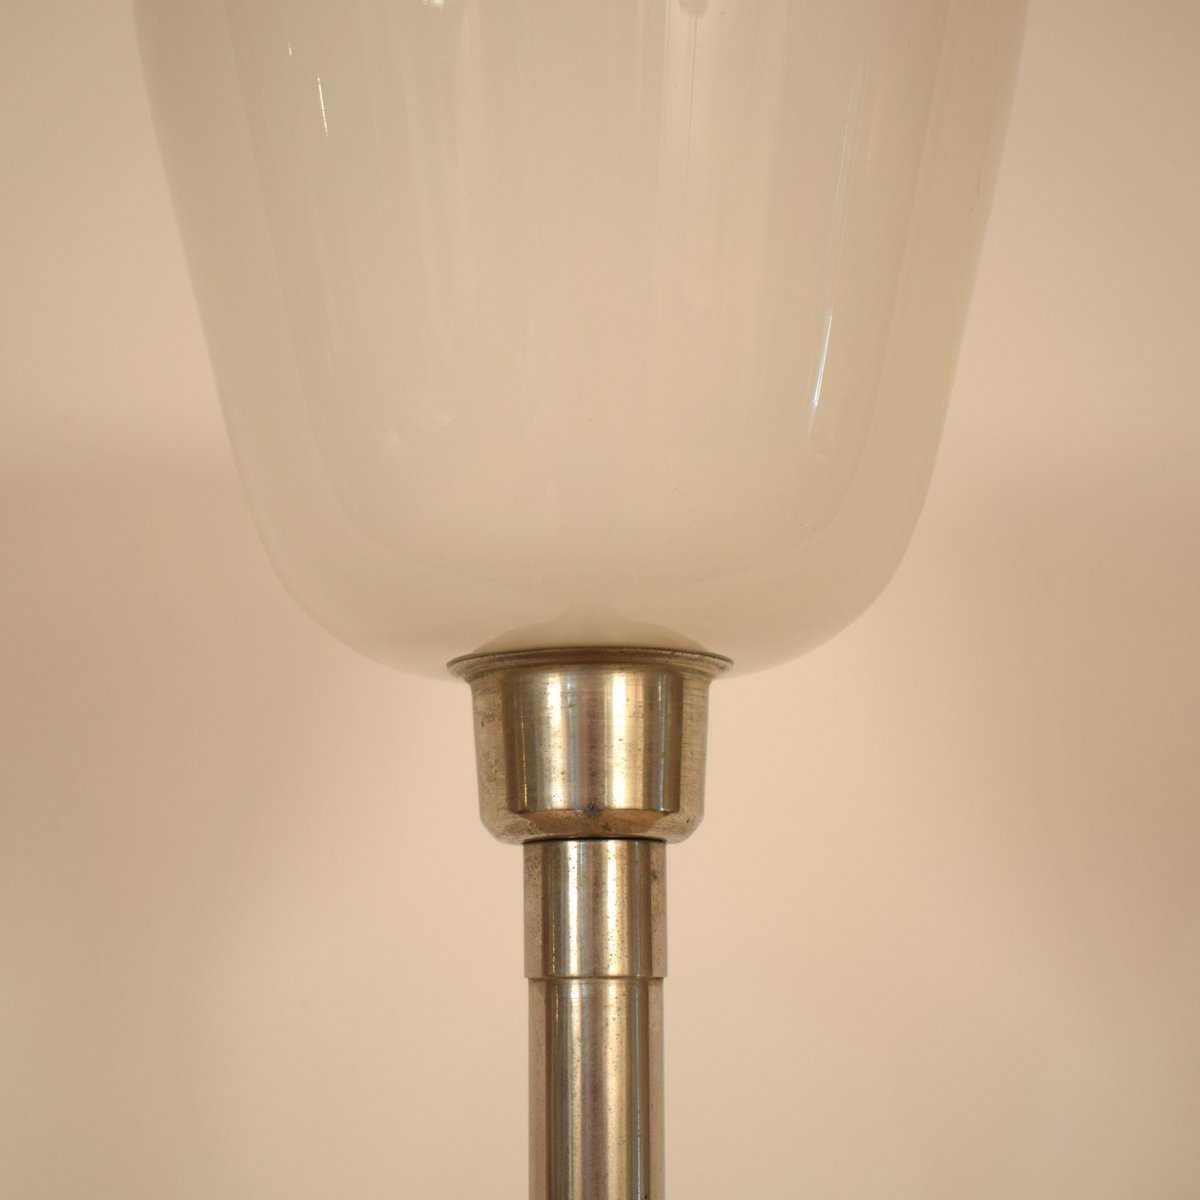 Vintage german art deco lamp 1930s for sale at pamono for Miroir art deco 1930